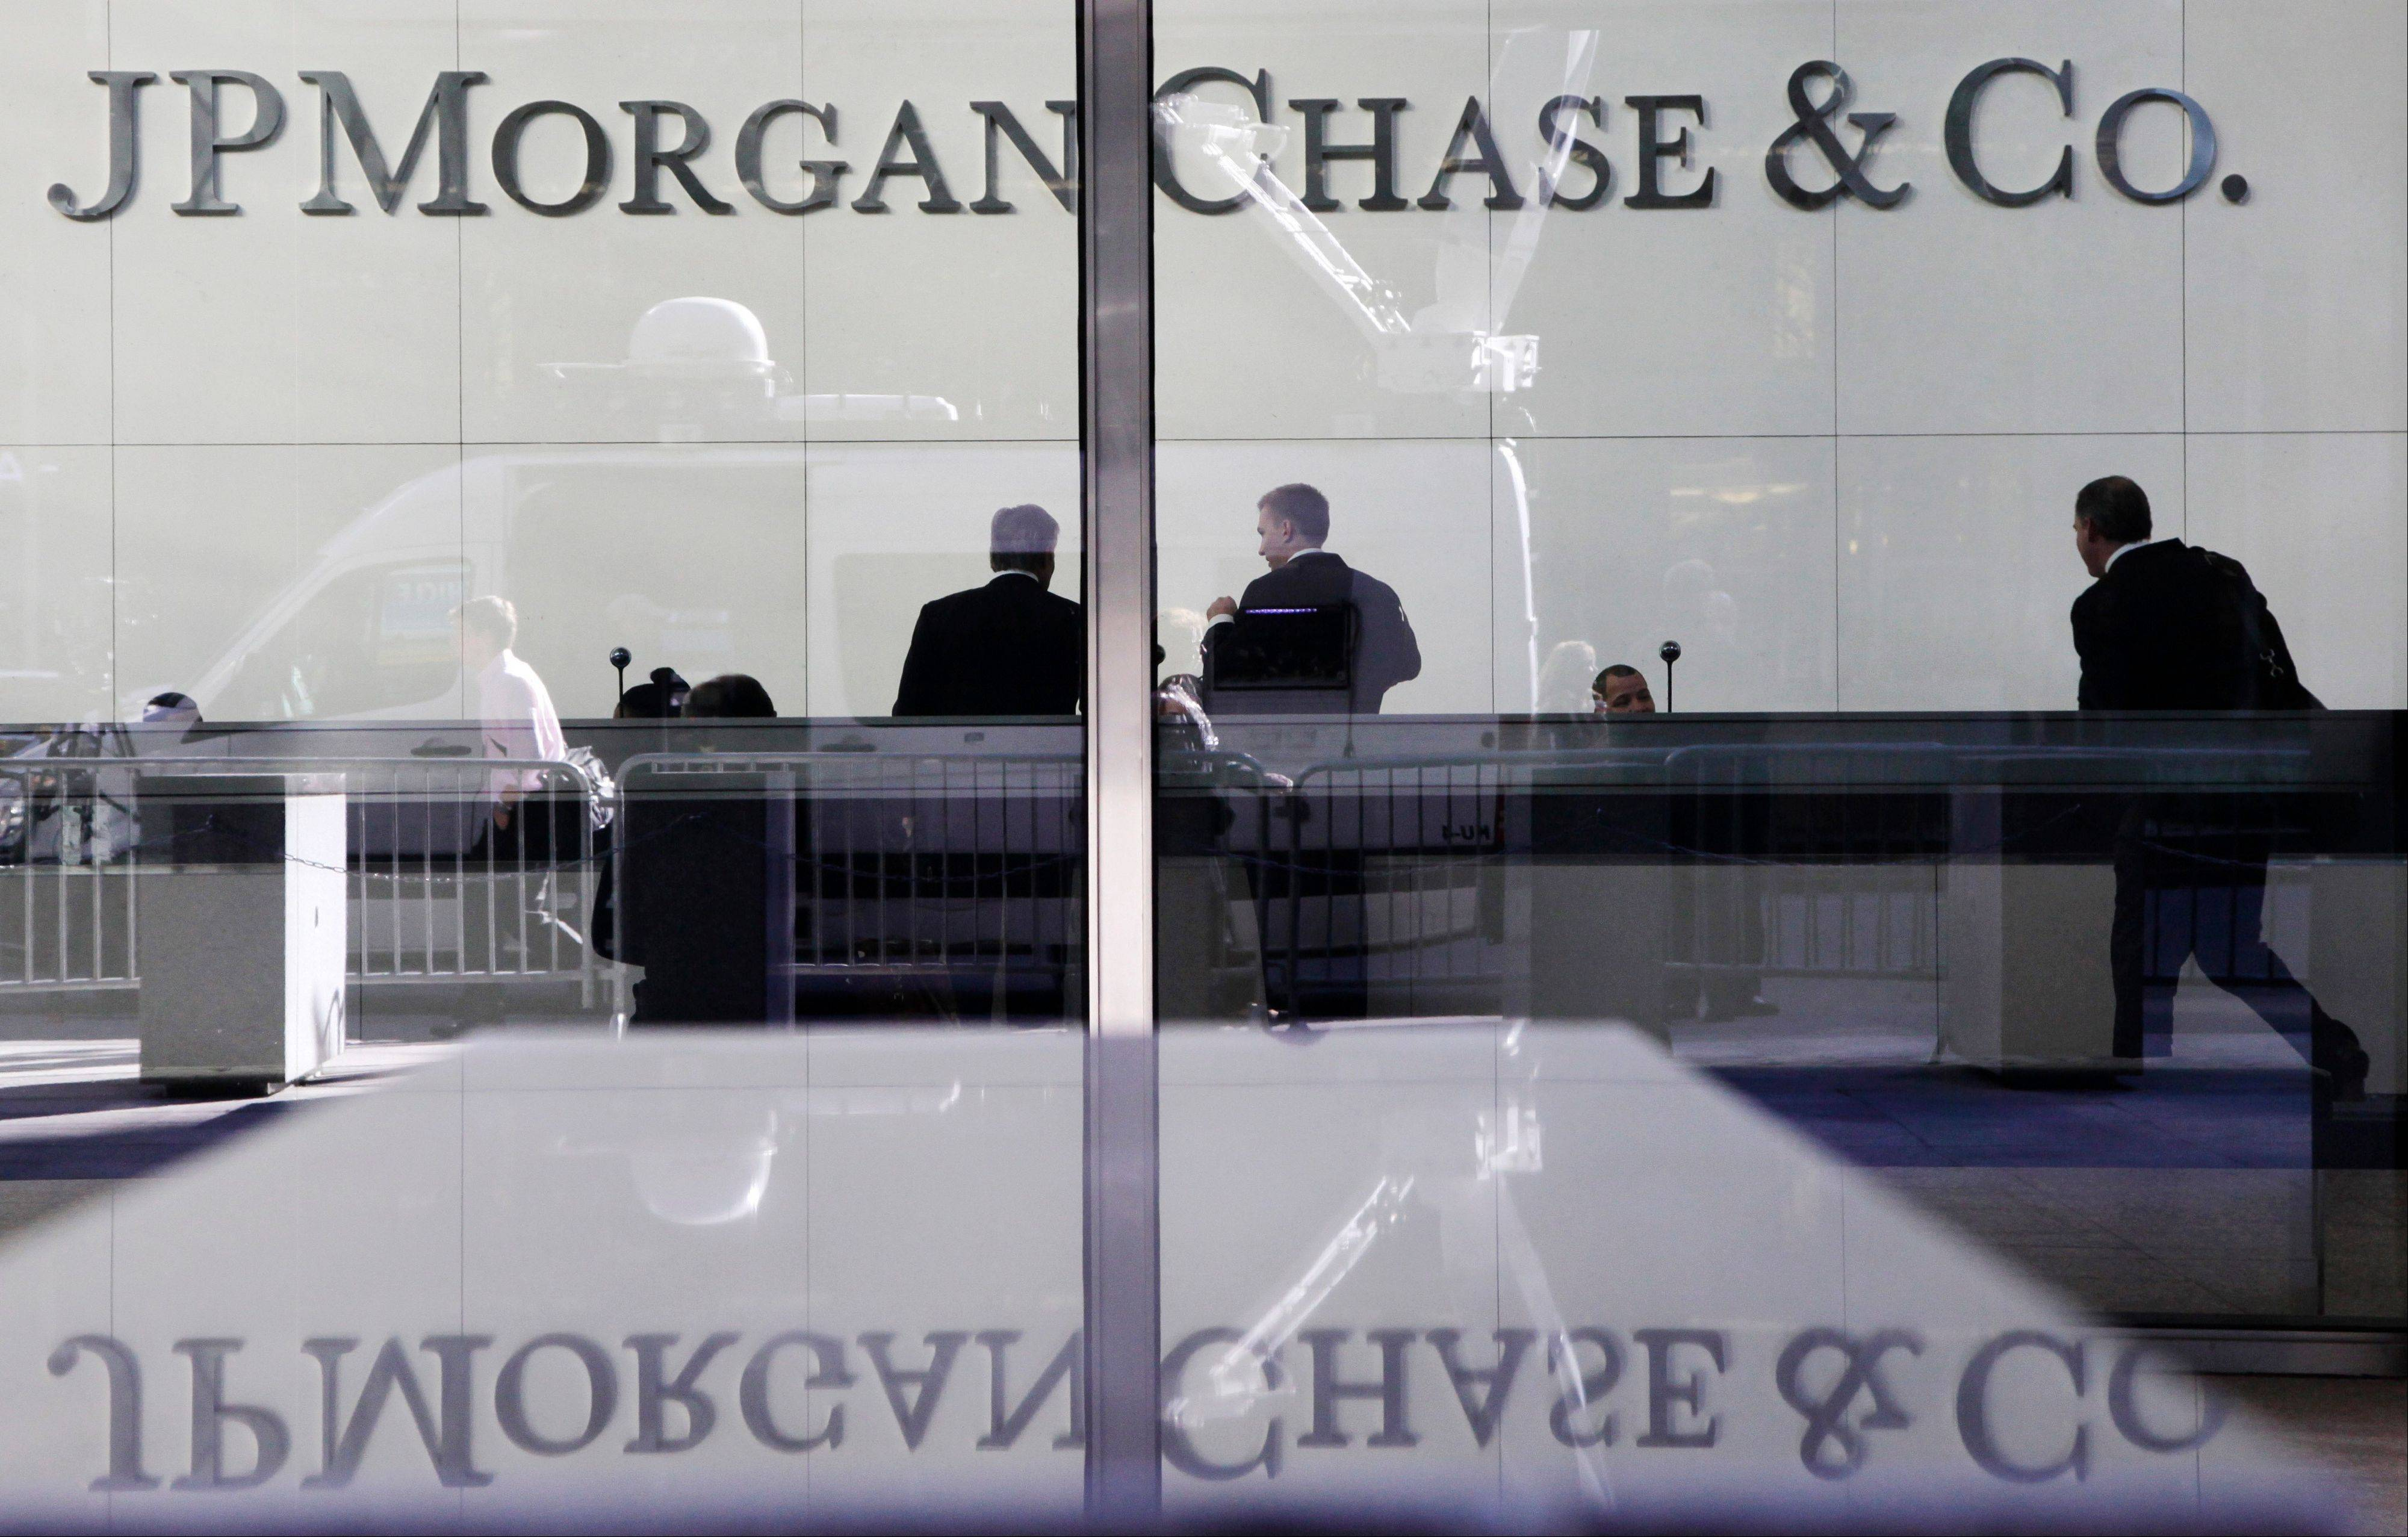 JPMorgan Chase & Co., already beset by other costly legal woes, has agreed to pay $1.7 billion to settle criminal charges accusing the bank of ignoring obvious warning signs of Bernard Madoff�s massive Ponzi scheme, federal authorities said Tuesday, Jan. 7, 2014.